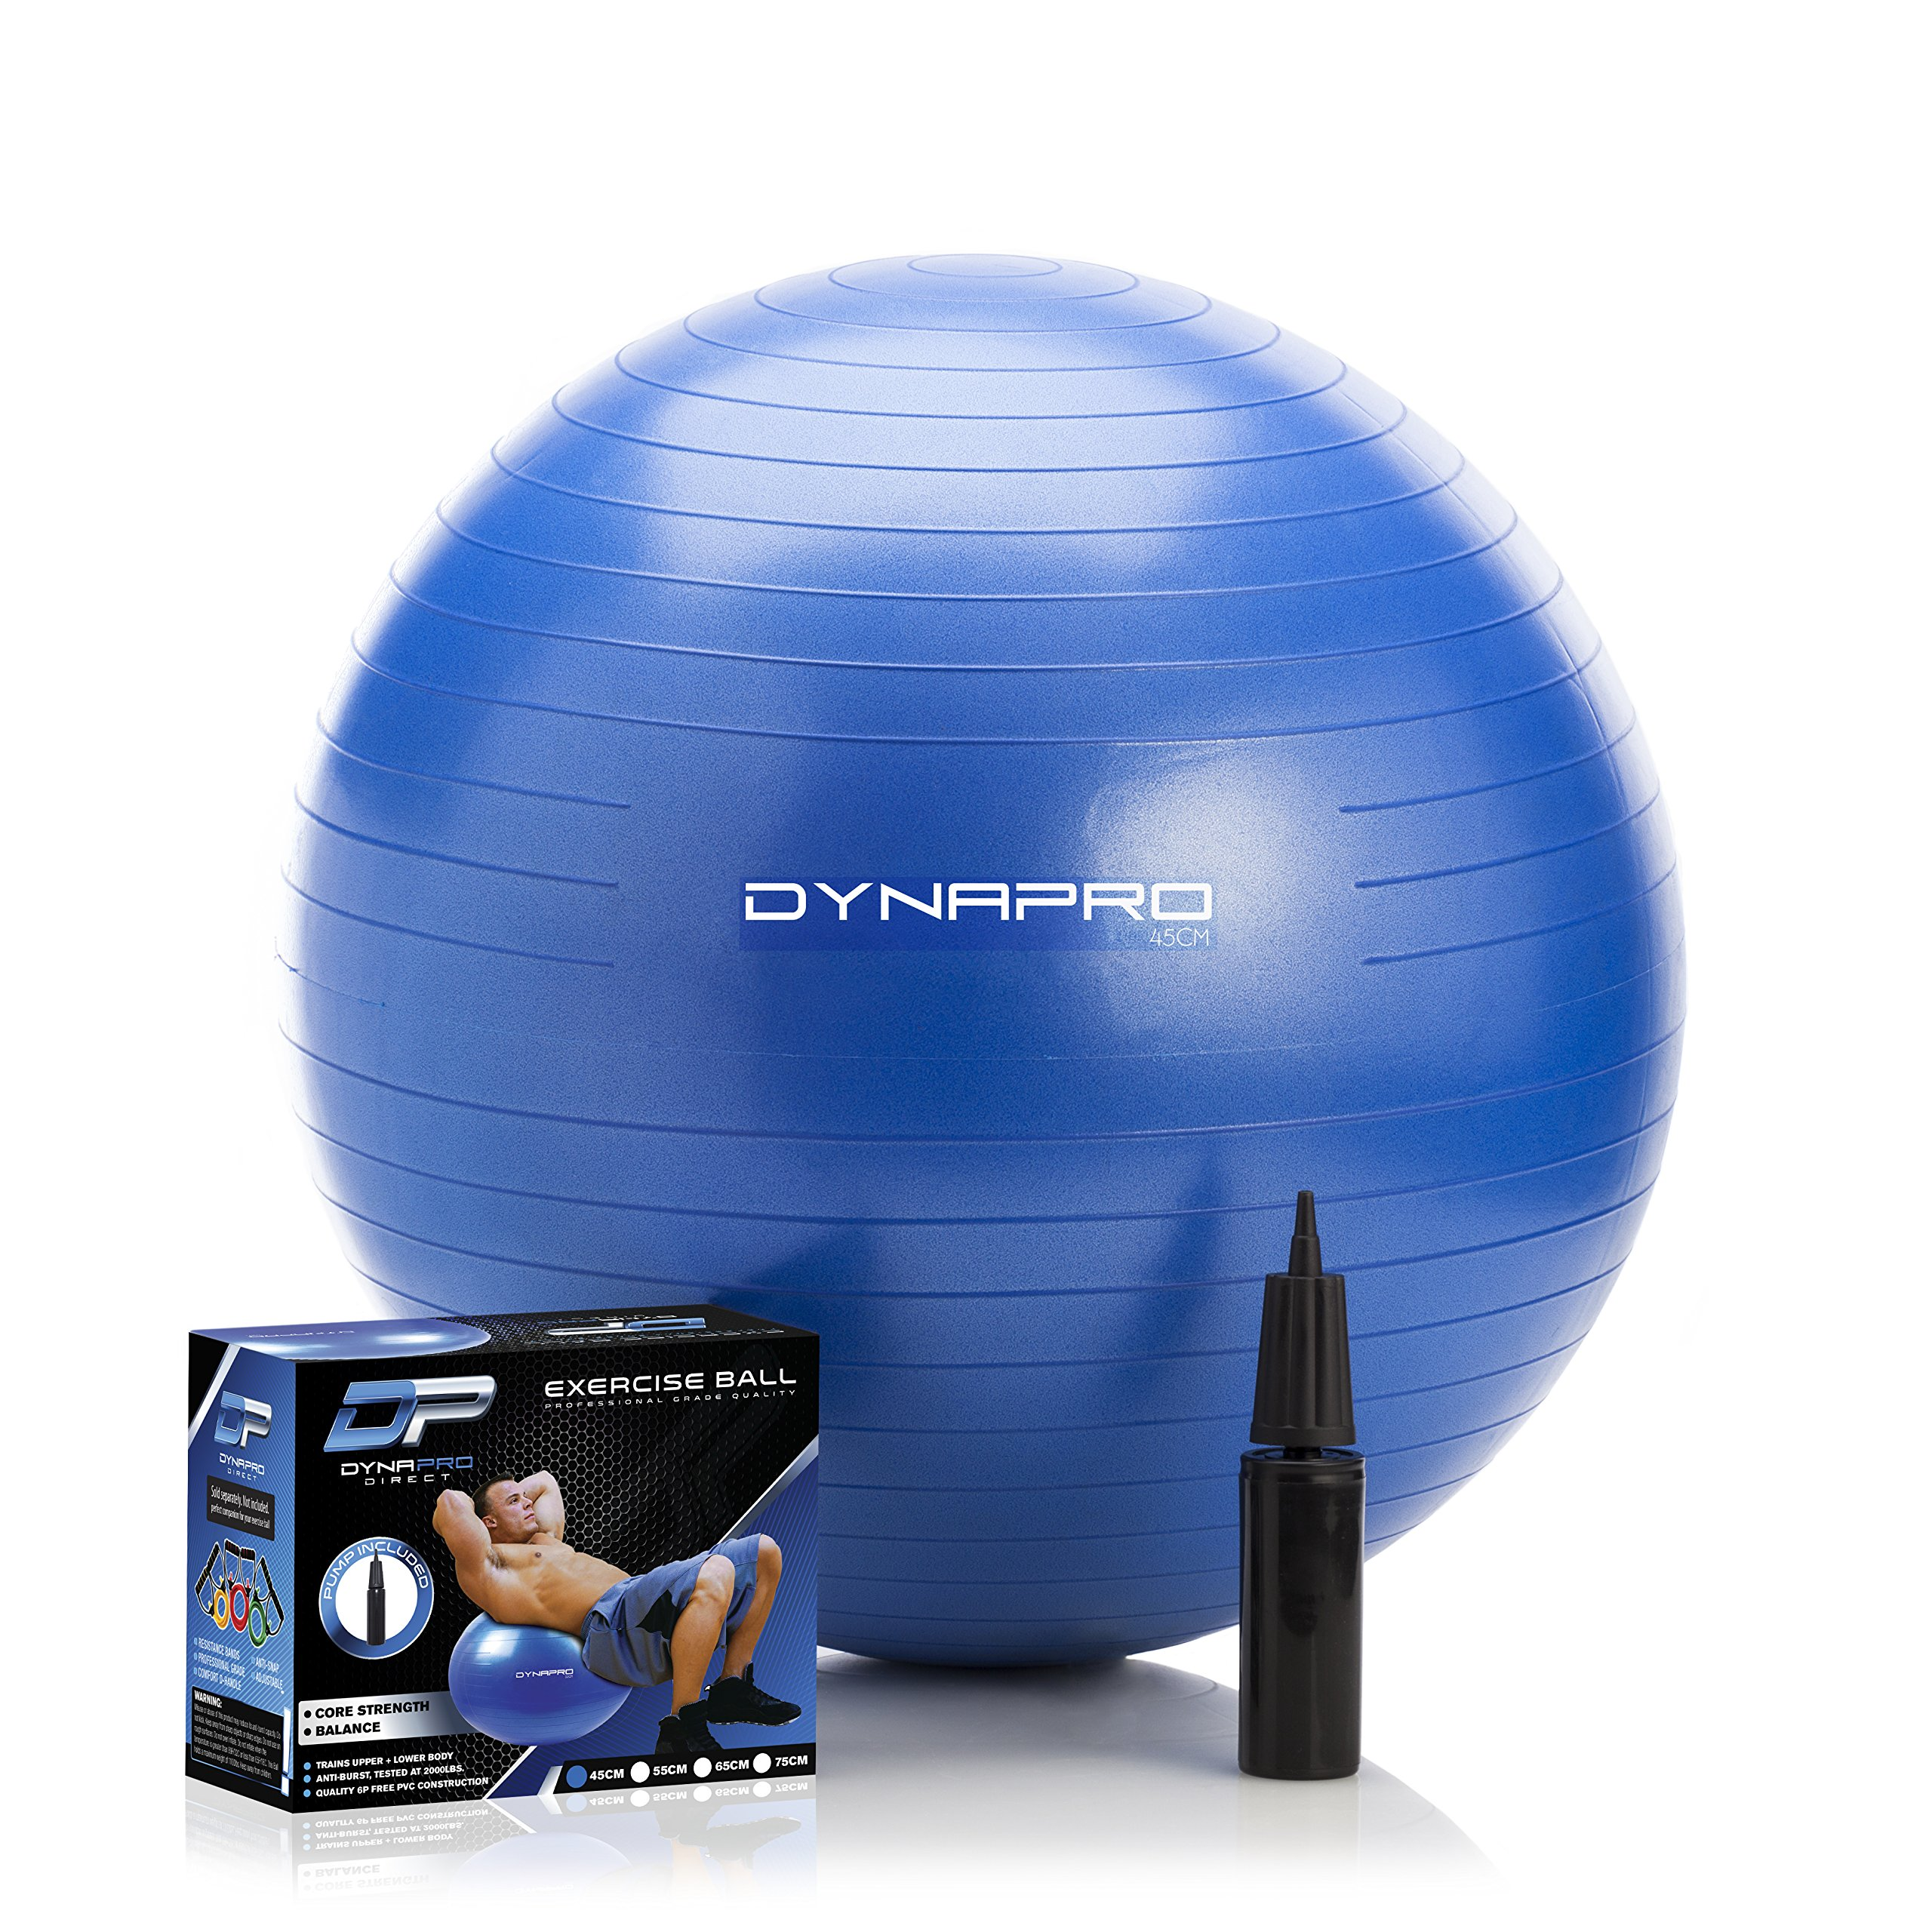 DYNAPRO Exercise Ball - 2,000 lbs Stability Ball - Professional Grade – Anti Burst Exercise Equipment for Home, Balance, Gym, Core Strength, Yoga, Fitness, Desk Chairs (Blue, 45 Centimeters) by DYNAPRO (Image #1)